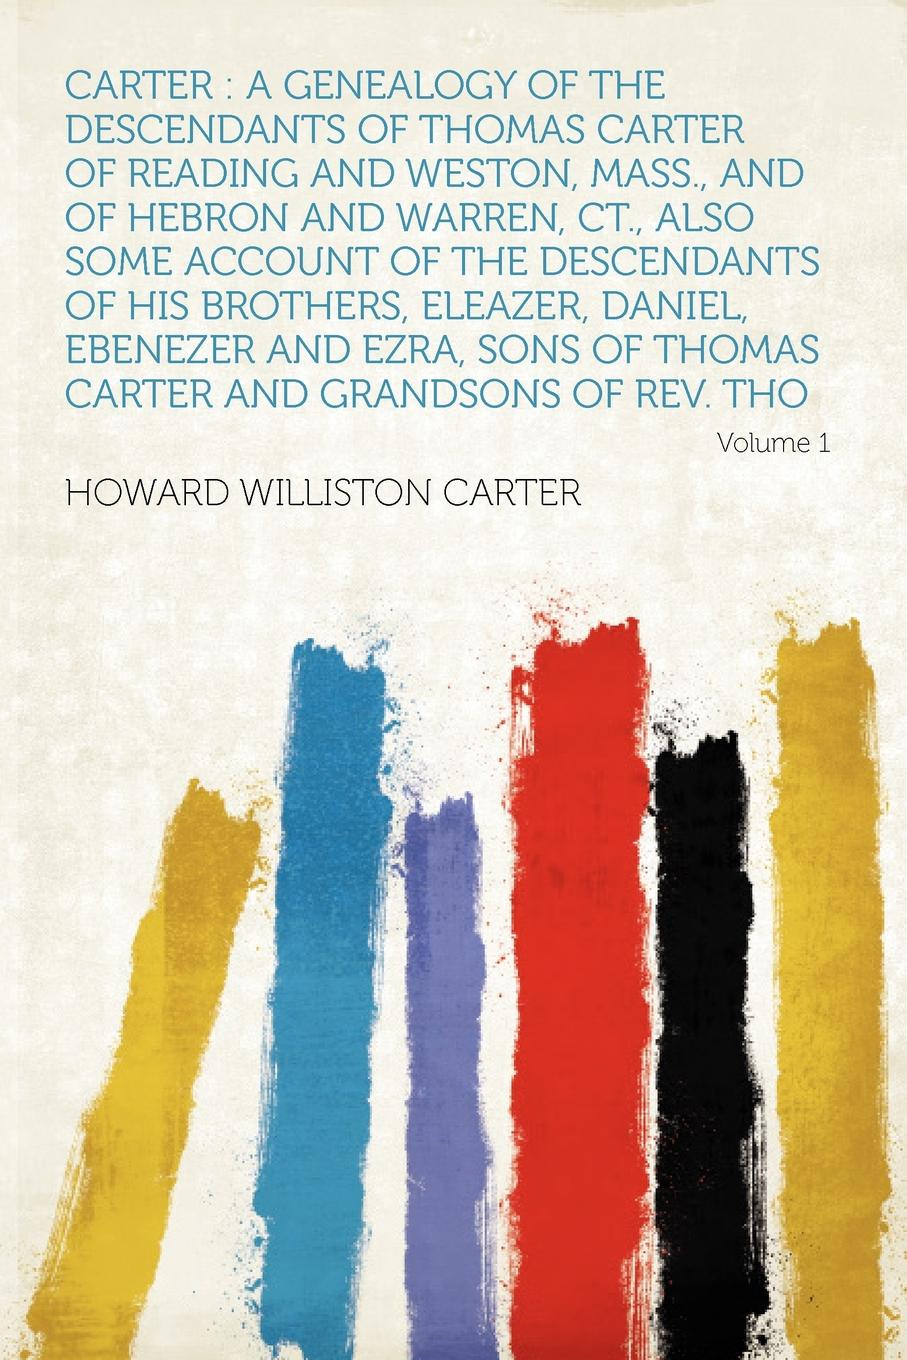 Howard Williston Carter Carter. a Genealogy of the Descendants of Thomas Carter of Reading and Weston, Mass., and of Hebron and Warren, Ct., Also Some Account of the Descendants of His Brothers, Eleazer, Daniel, Ebenezer and Ezra, Sons of Thomas Carter and Grandsons of R... redington carter john redington of topsfield massachusetts and some of his descendants with notes on the wales family